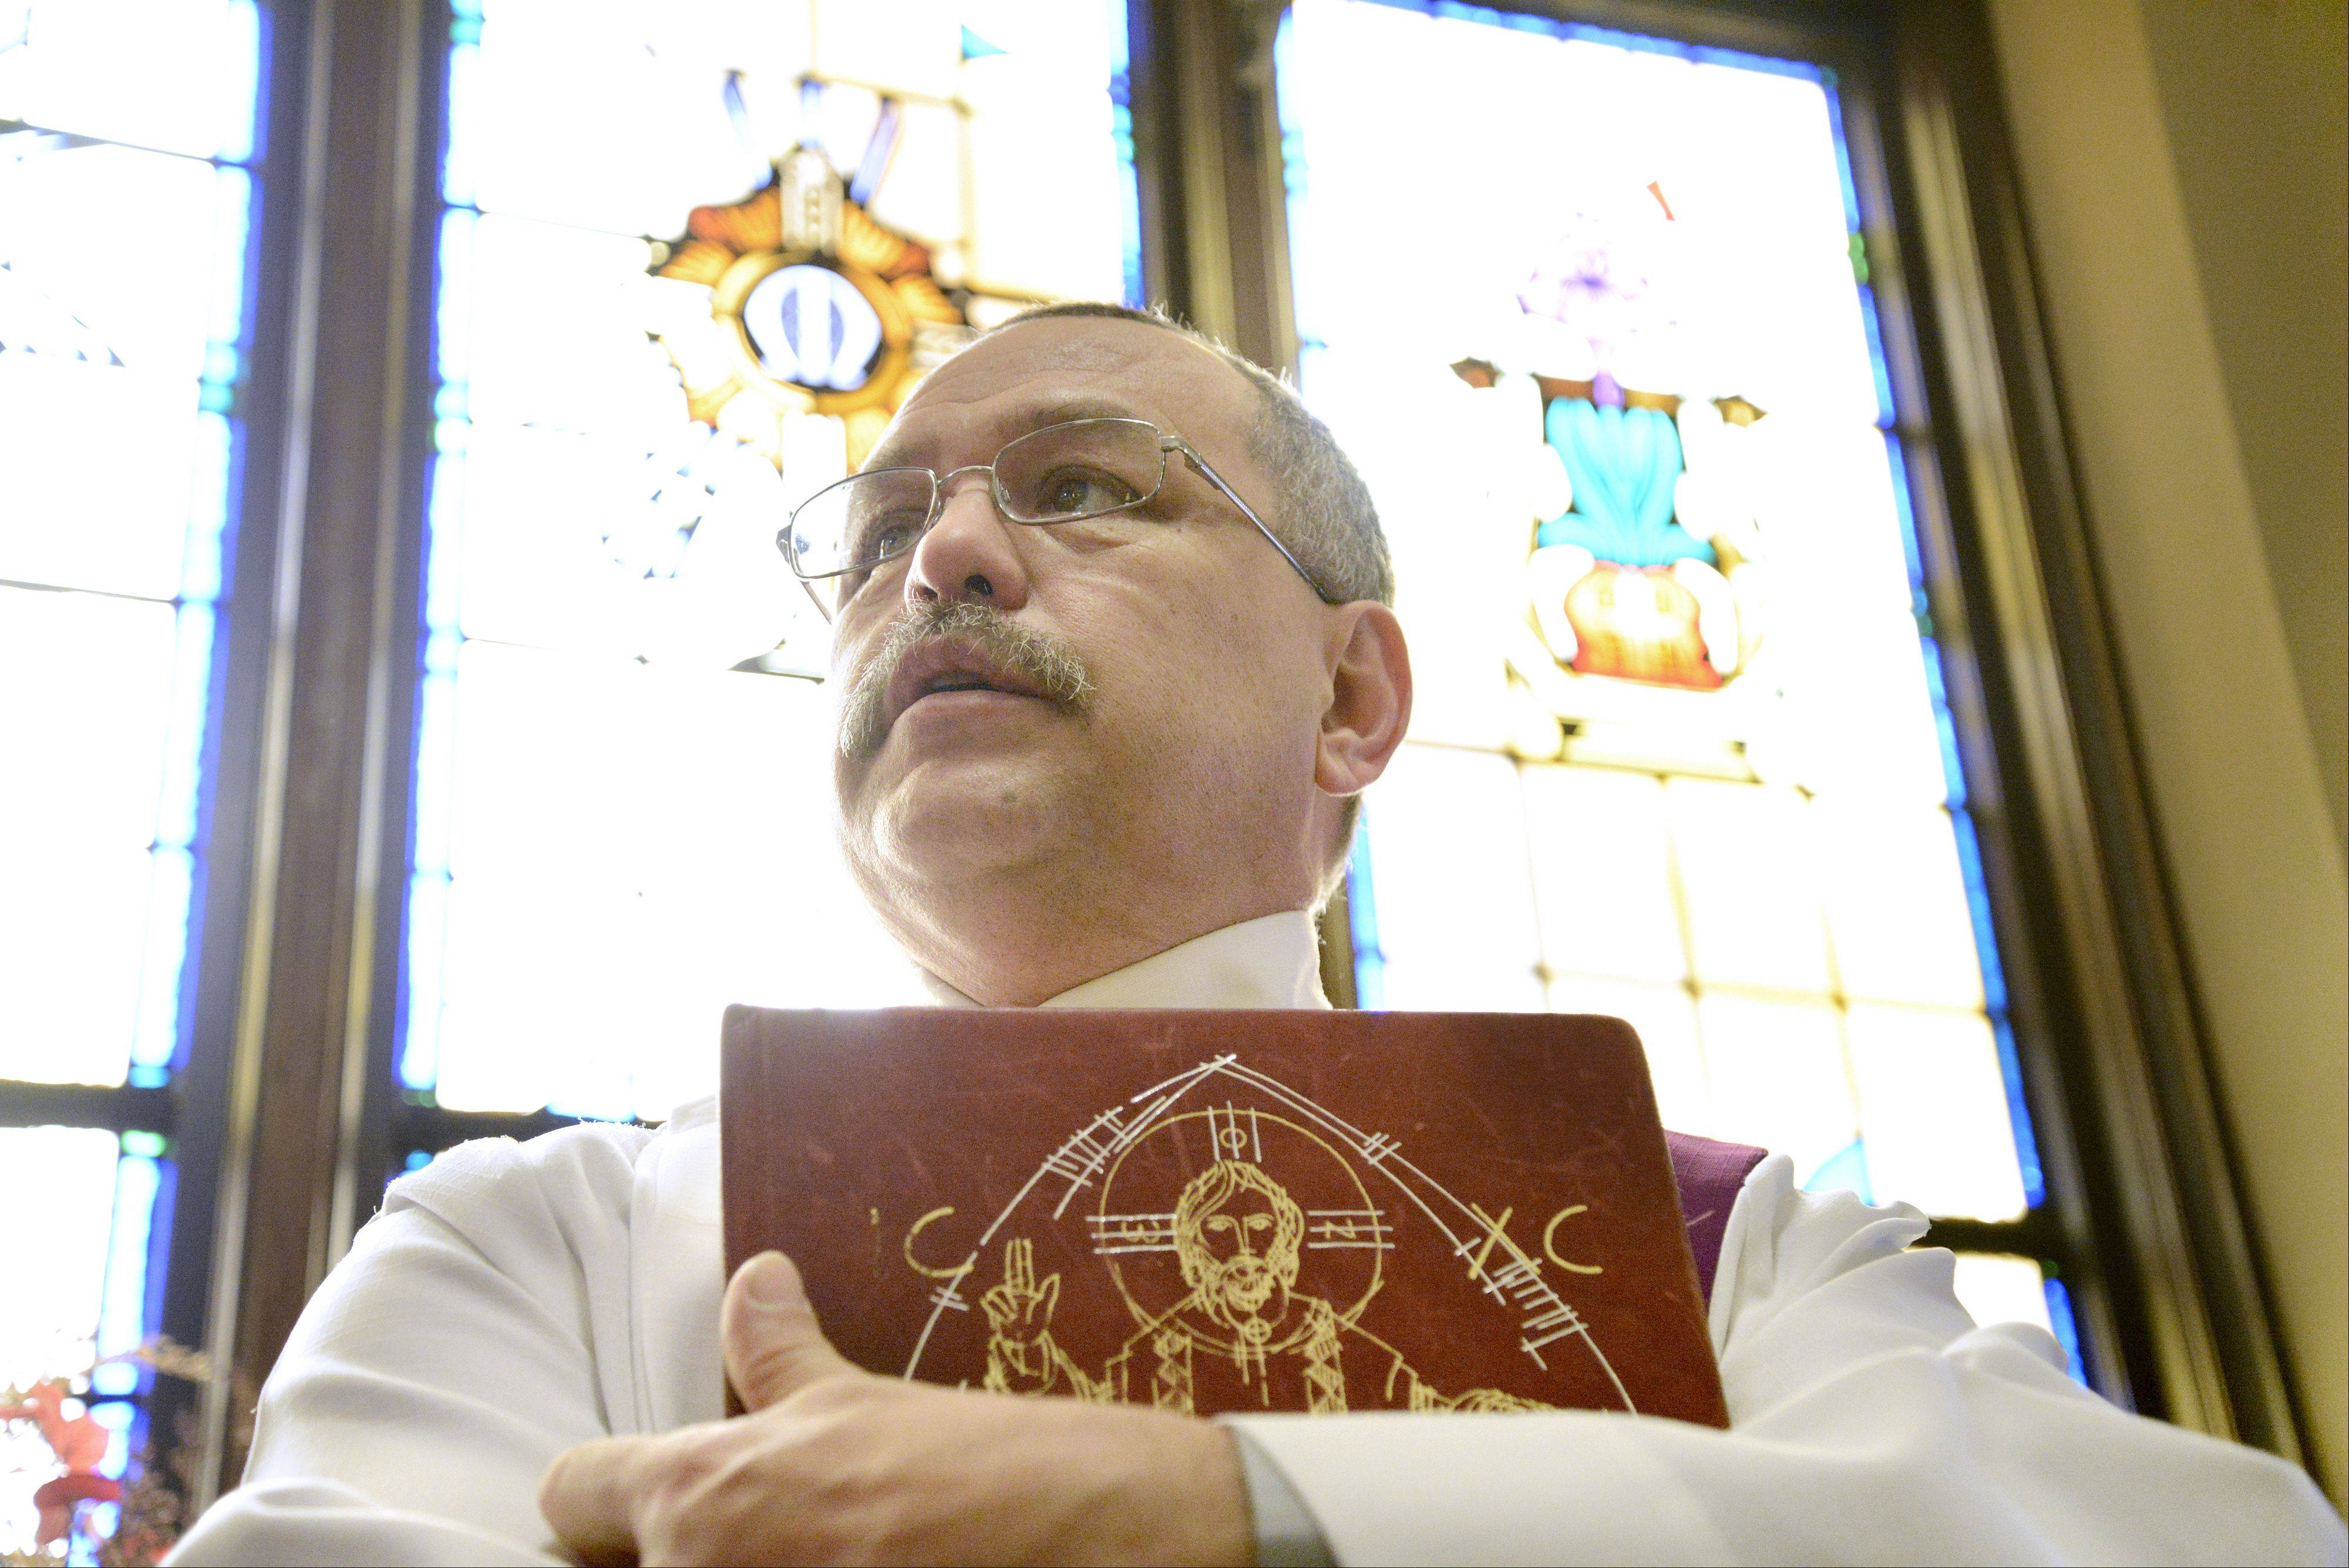 Deacon Luis Saltigerald talks about Pope Francis before a Spanish service starts at St. Mary's Church in West Chicago on Sunday. The parish's large Latino population is excited about the new pope's Latin American background.